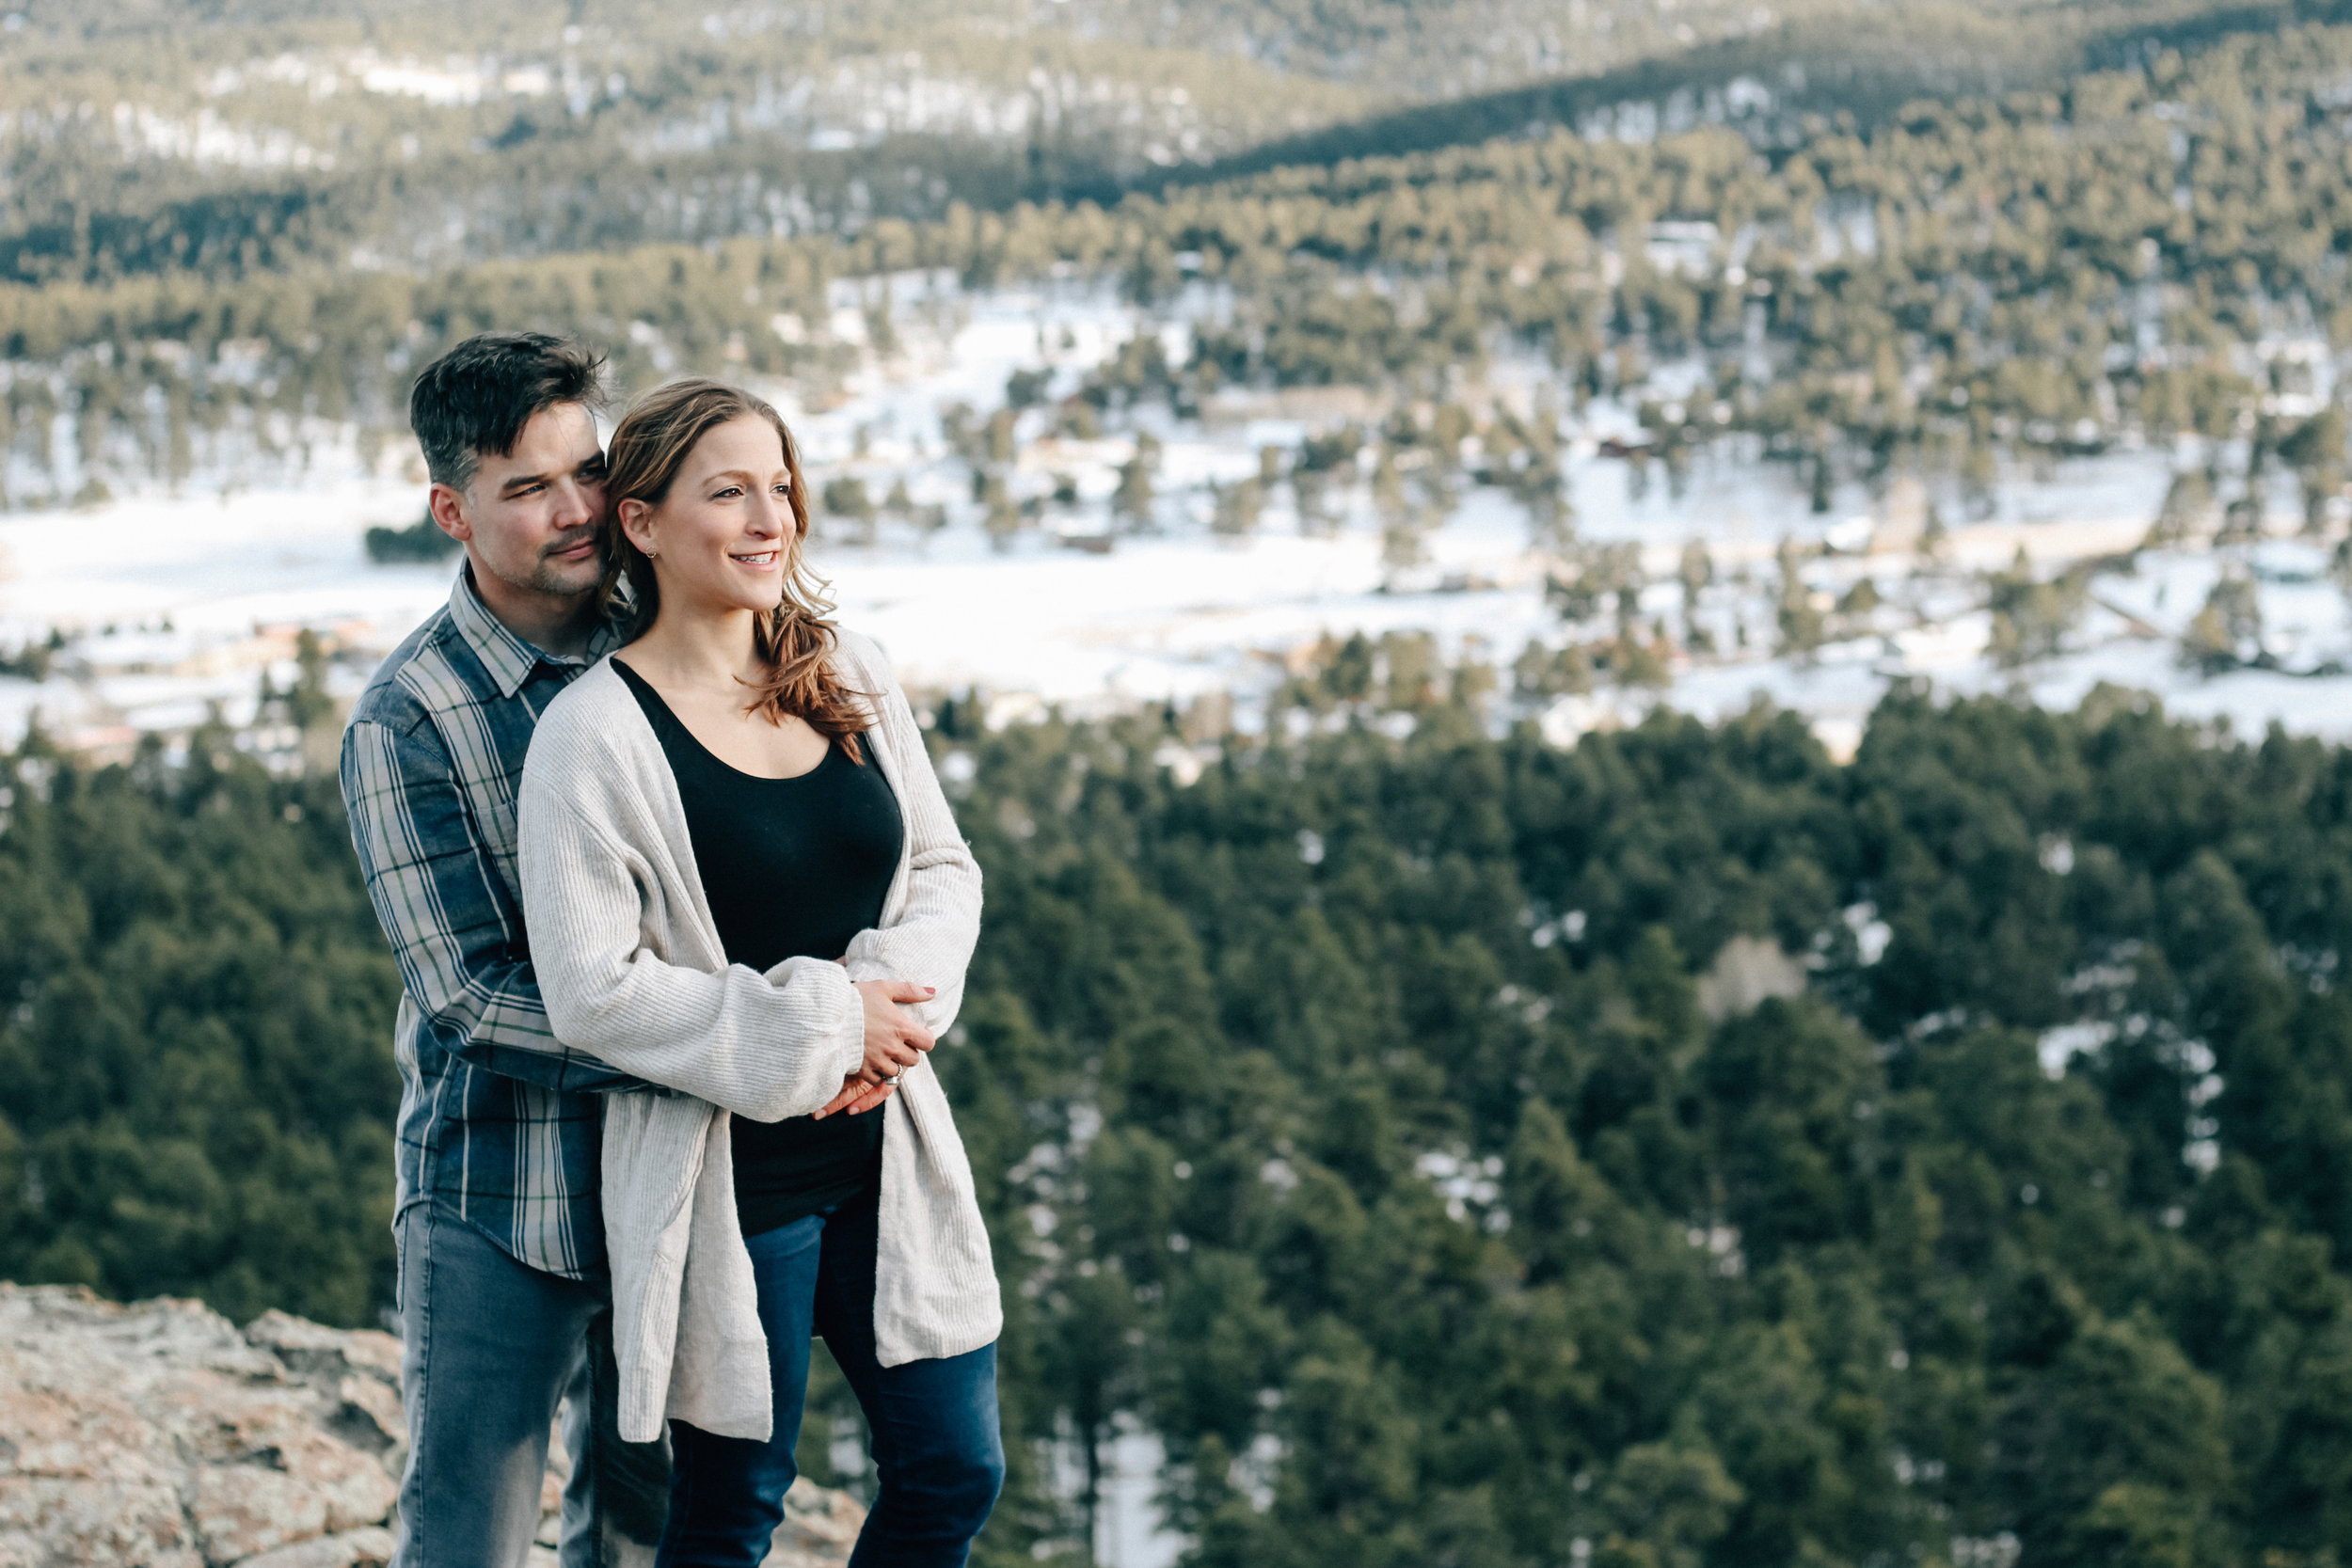 Engagement - $225 - Includes 2 hour photography session at location of your choice, 2 outfit changes, and 50-100 digital prints delivered in one week